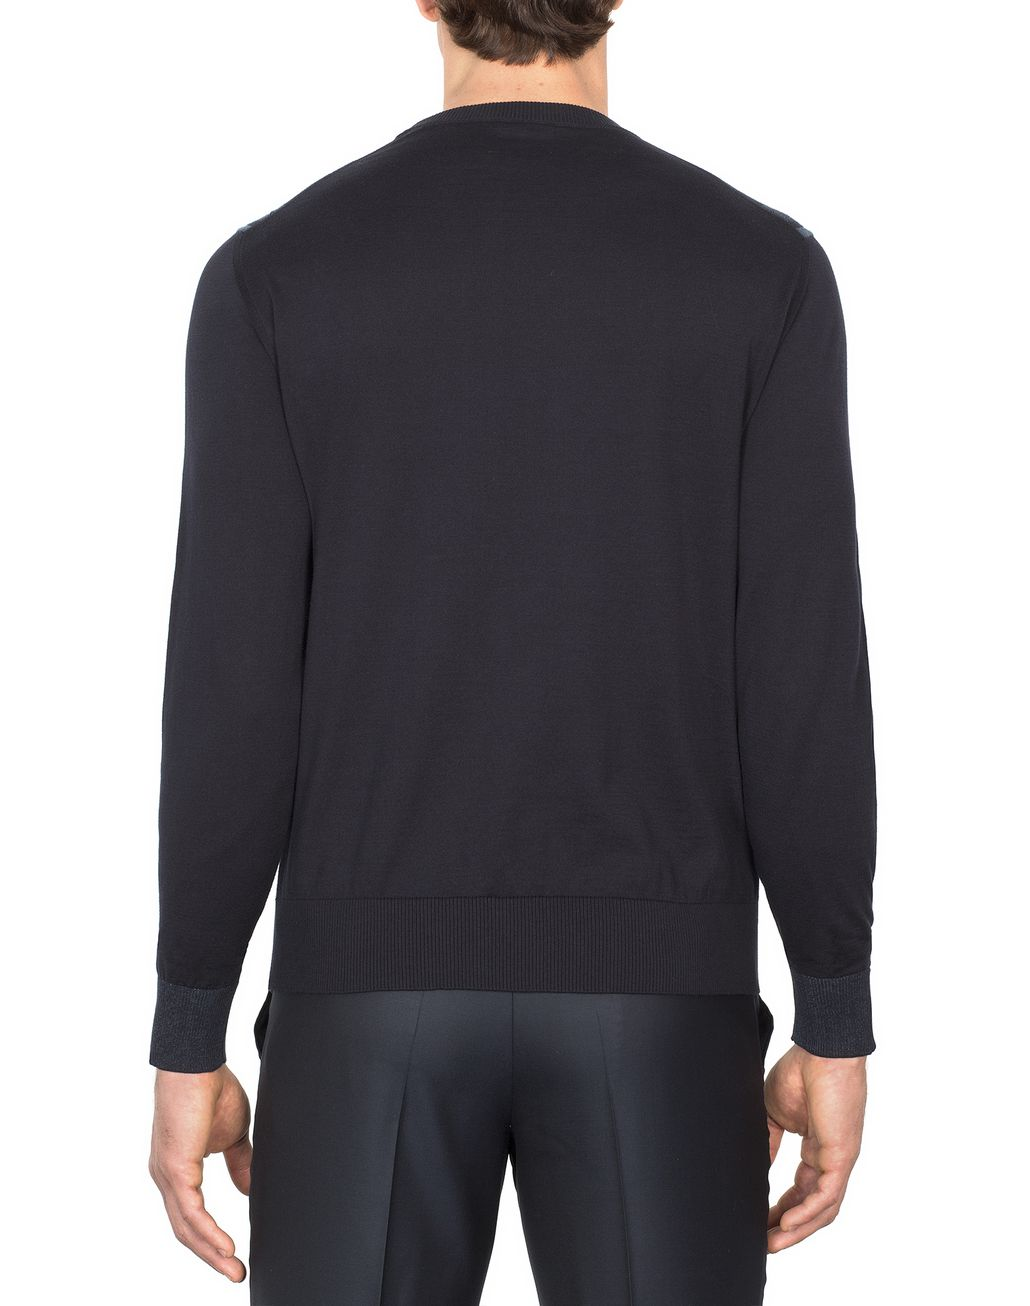 BRIONI Navy-Blue Cotton and Silk Striped Sweater with Two-Tone Trim Knitwear Man d